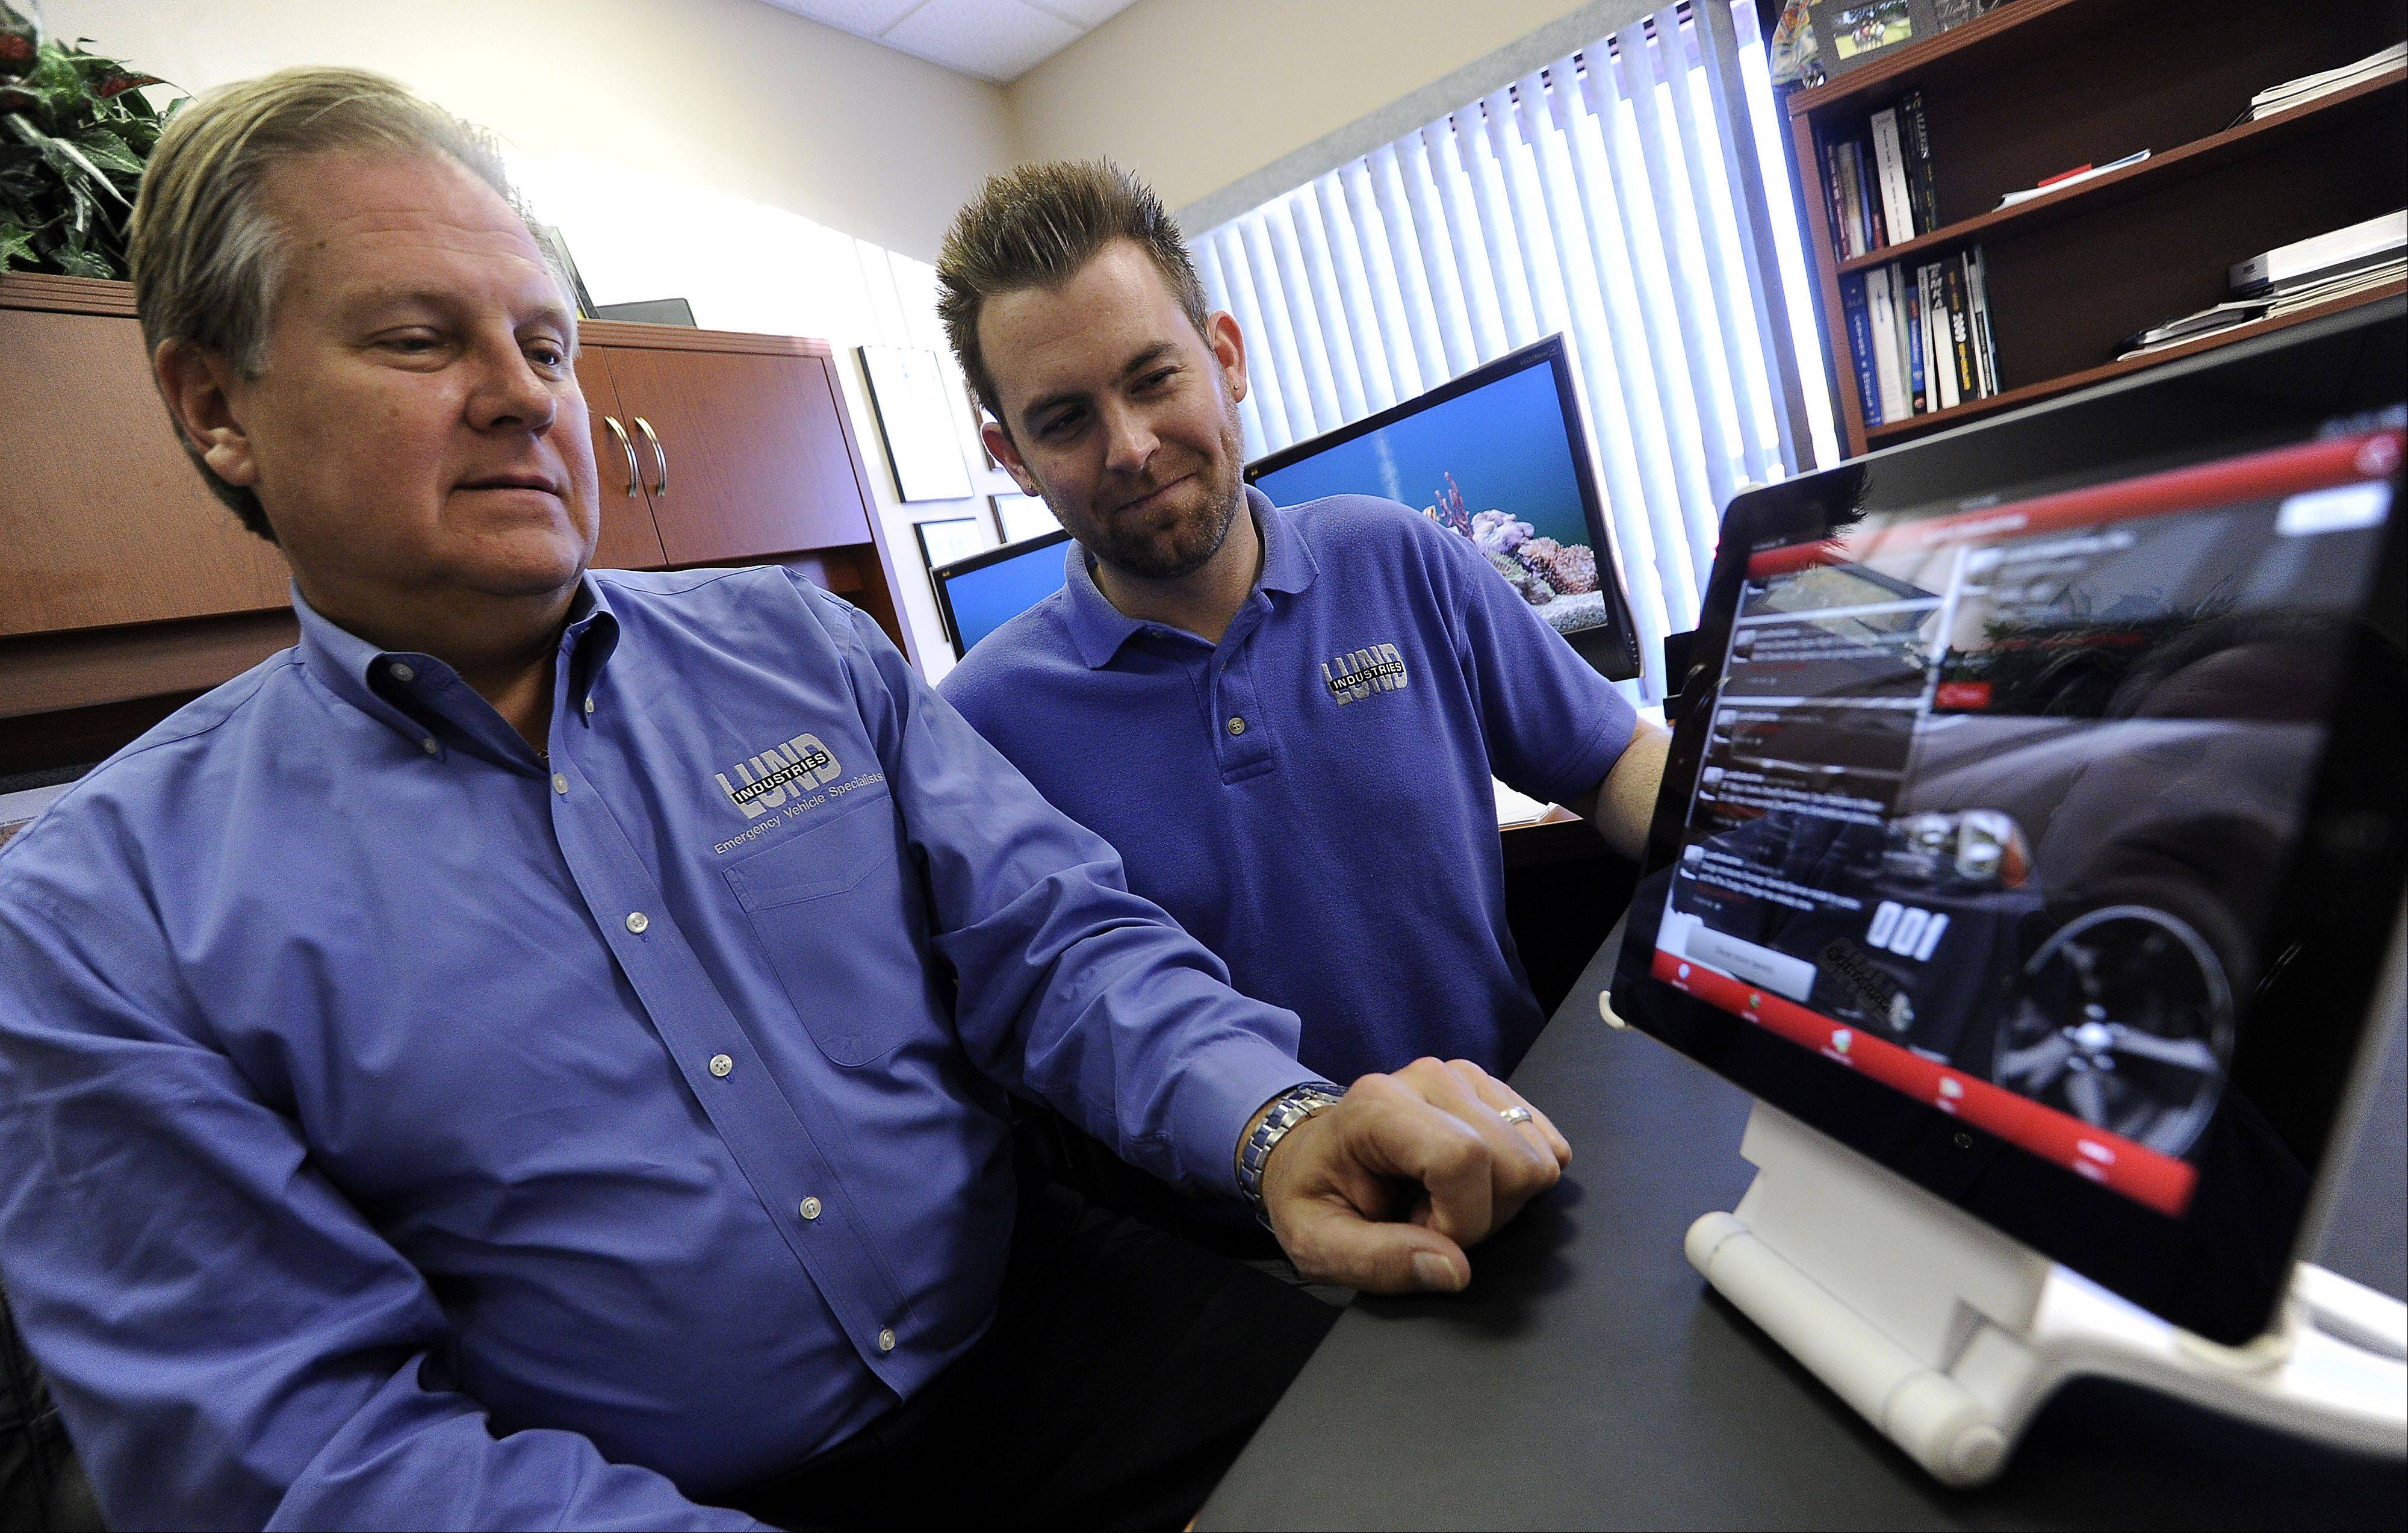 Michael Malec, left, of Lund Industries' sales department in Wheeling and Paul Lundberg, president of Lund, show off their app on an iPad.